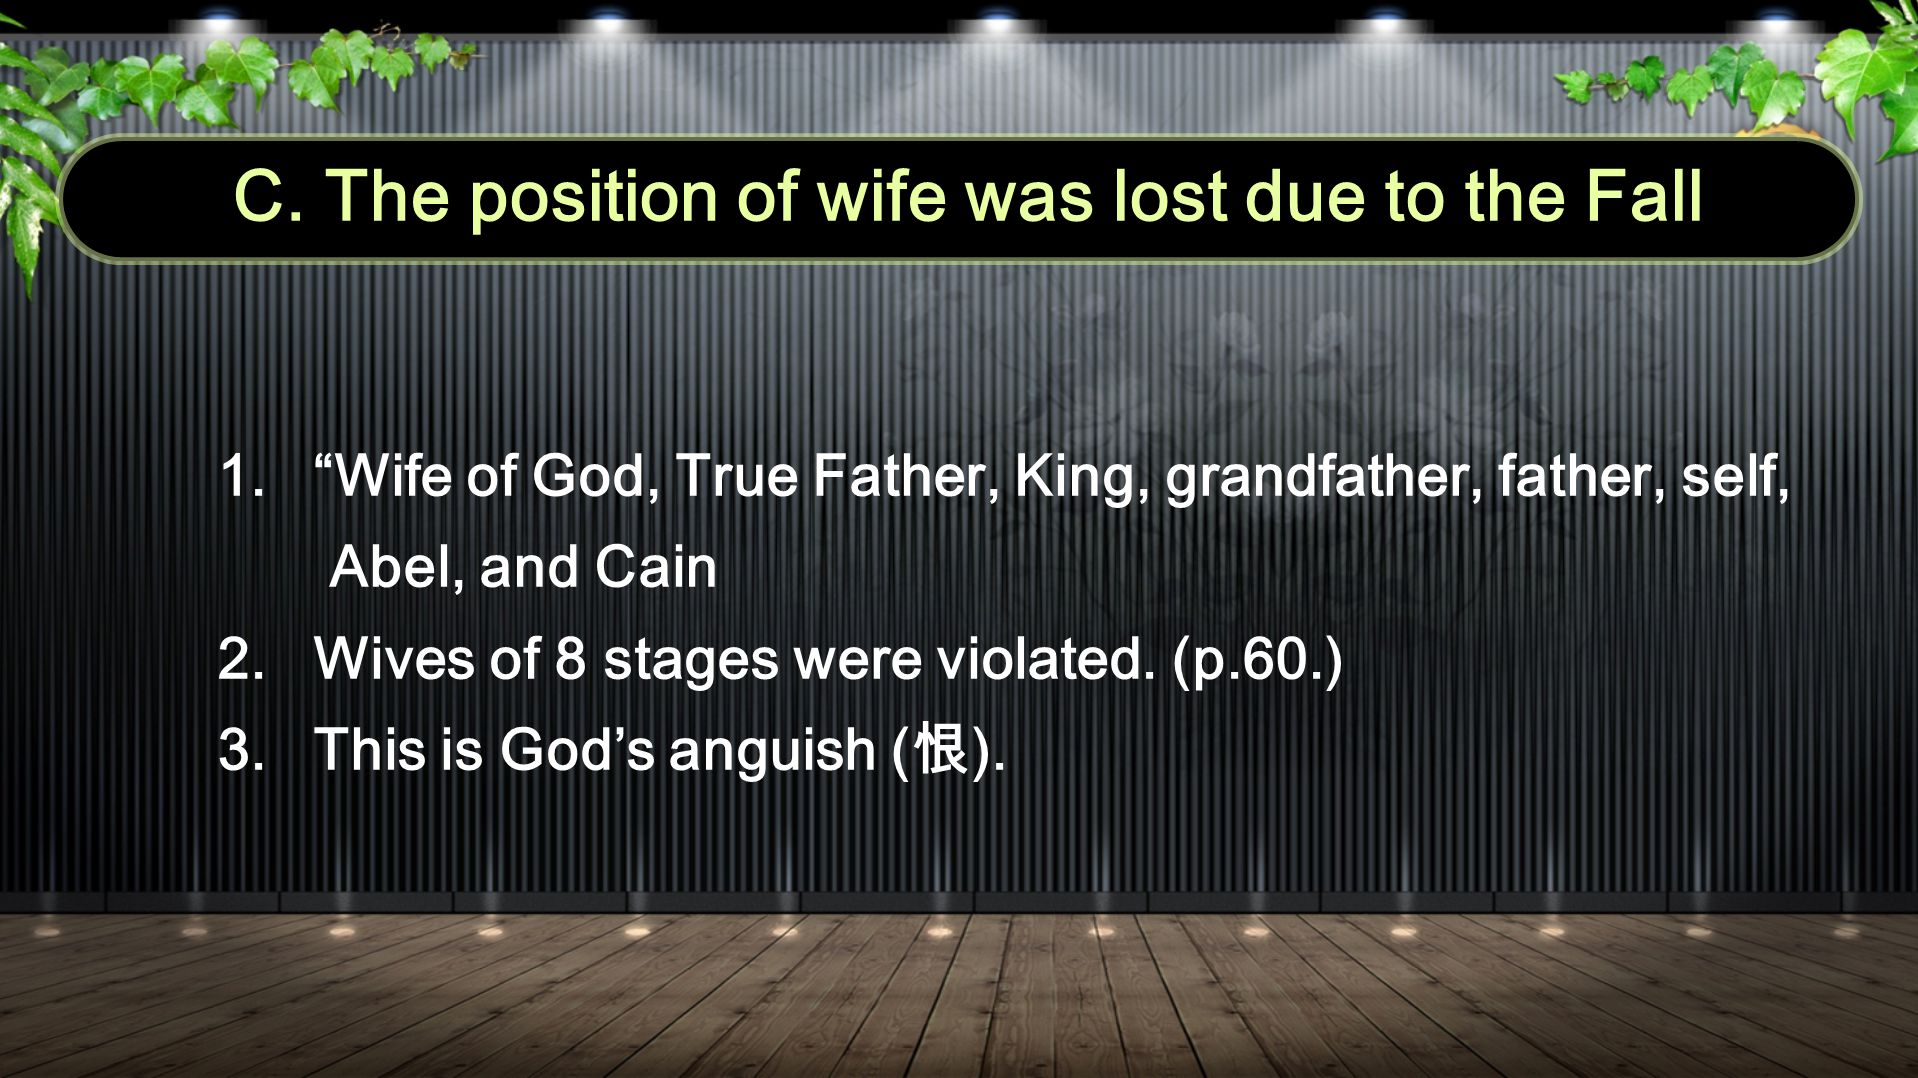 1. Wife of God, True Father, King, grandfather, father, self, Abel, and Cain 2.Wives of 8 stages were violated.